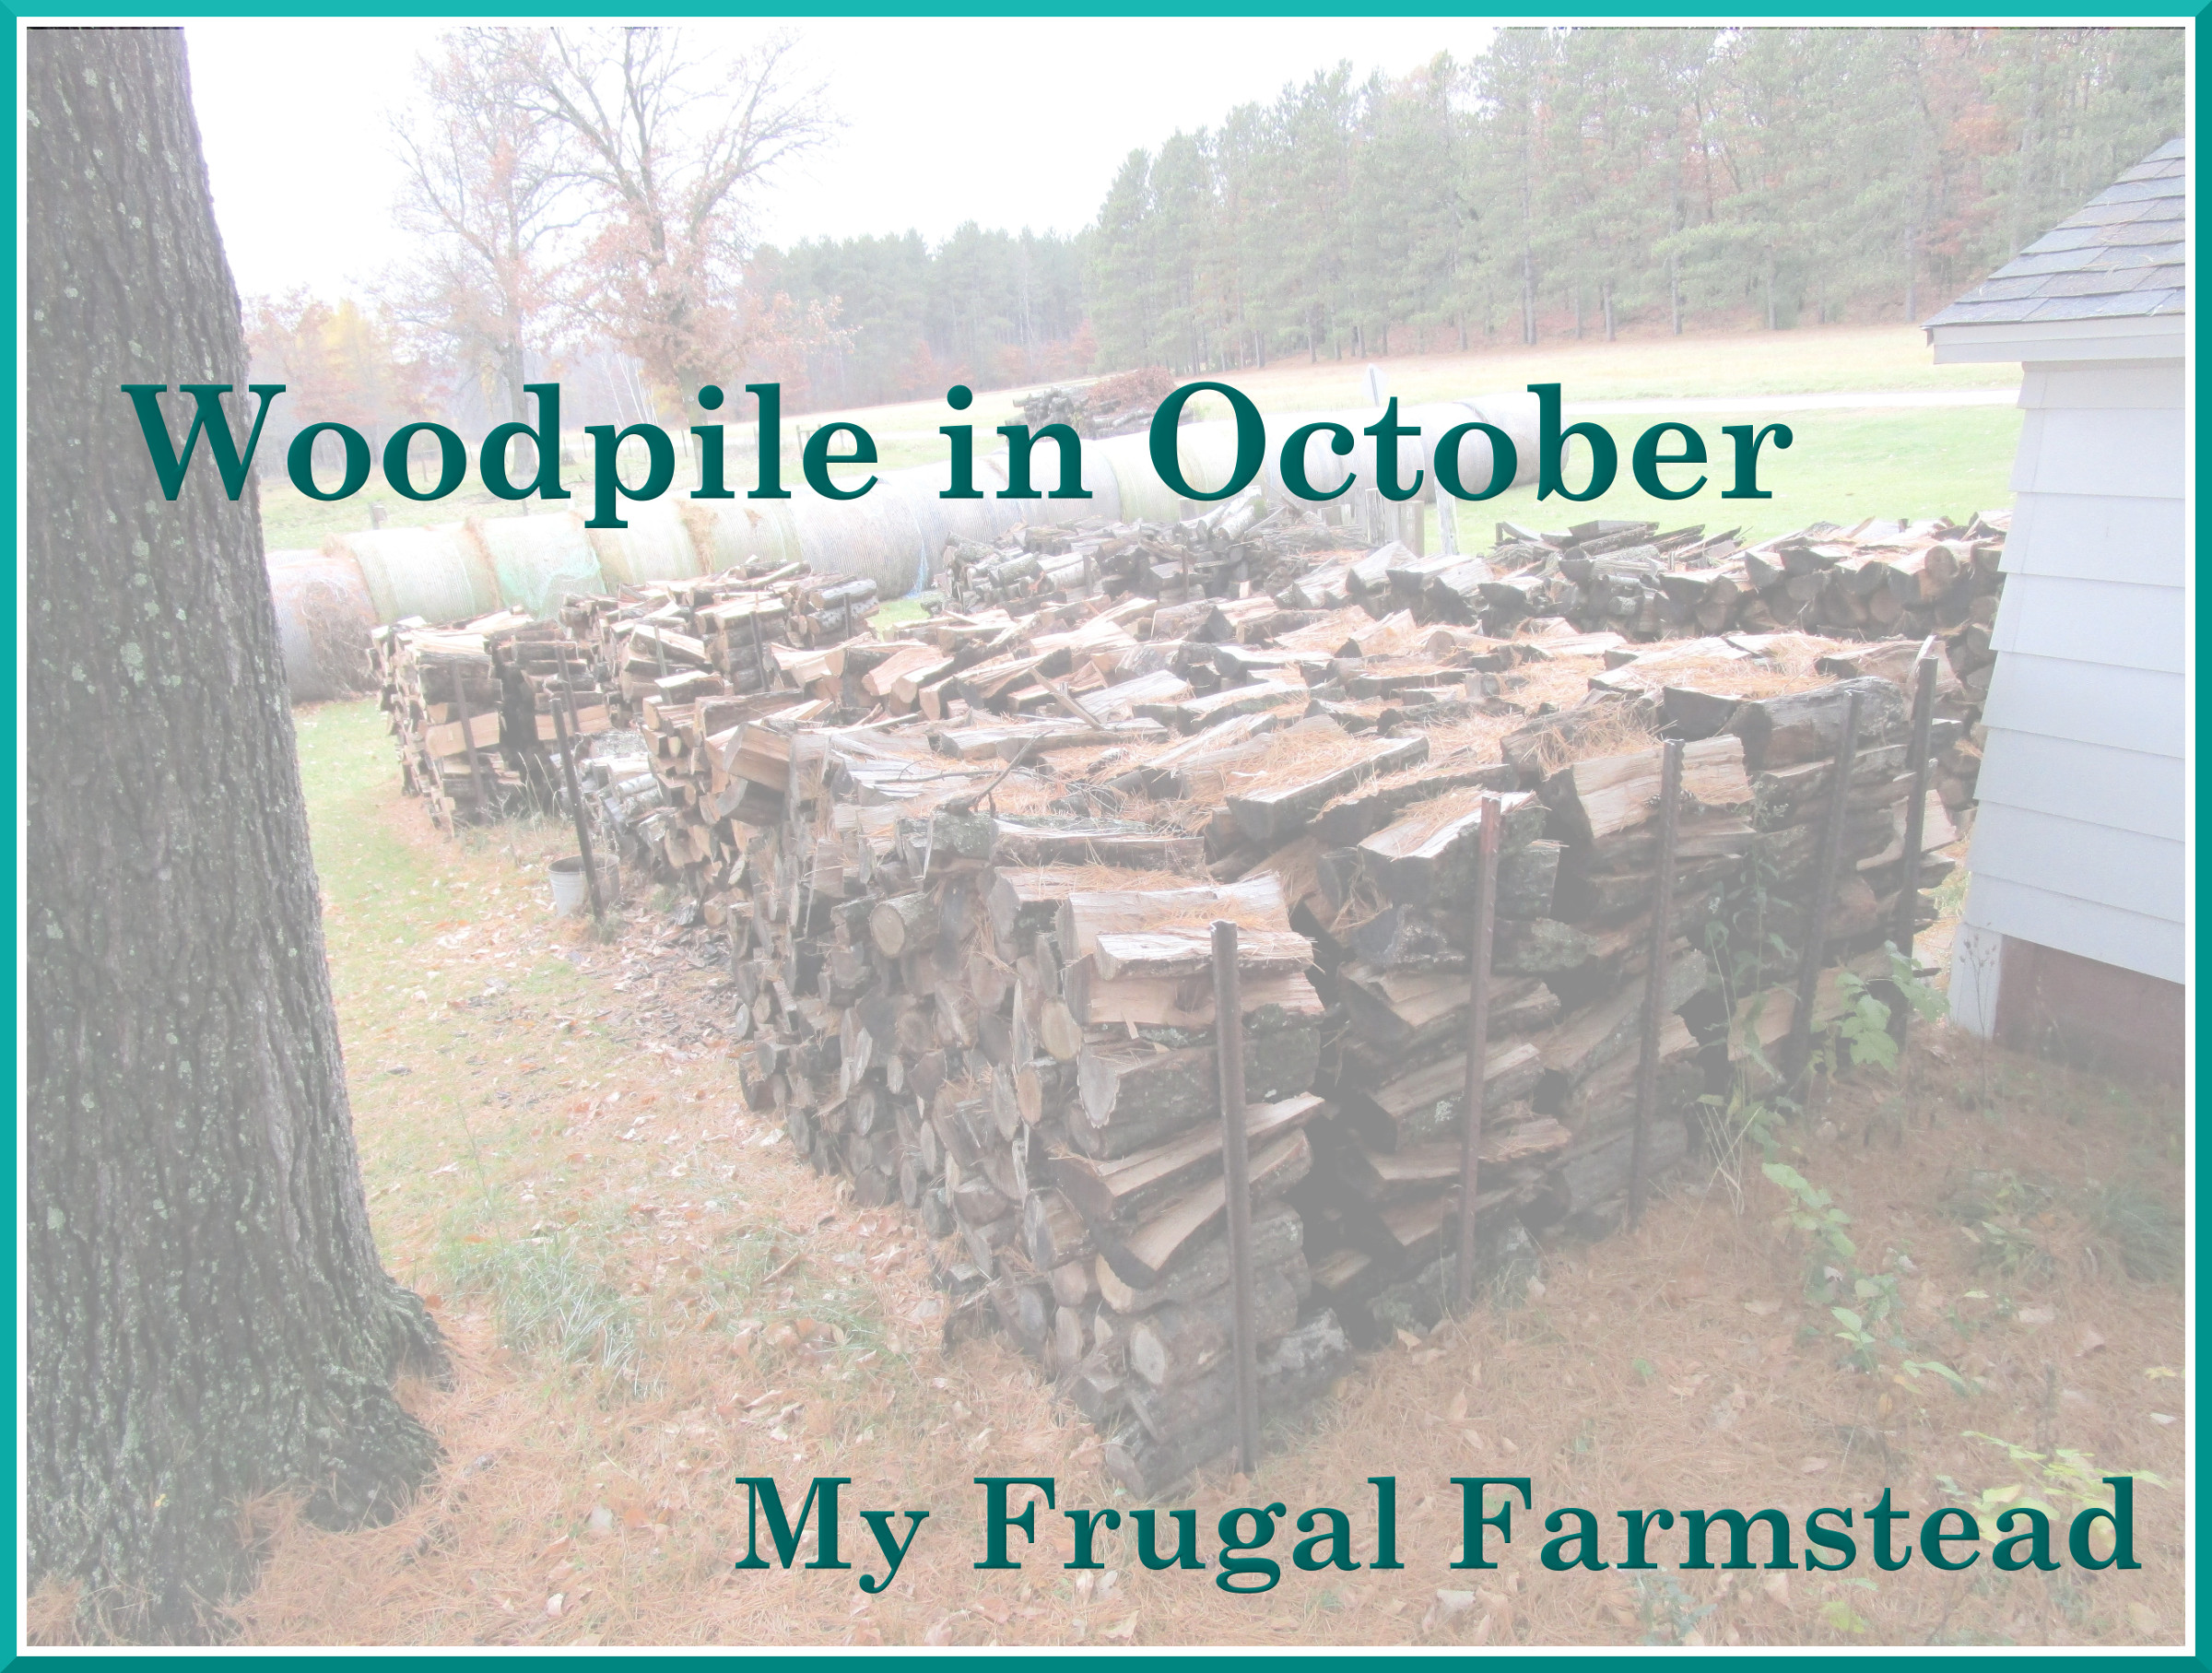 Woodpile in October